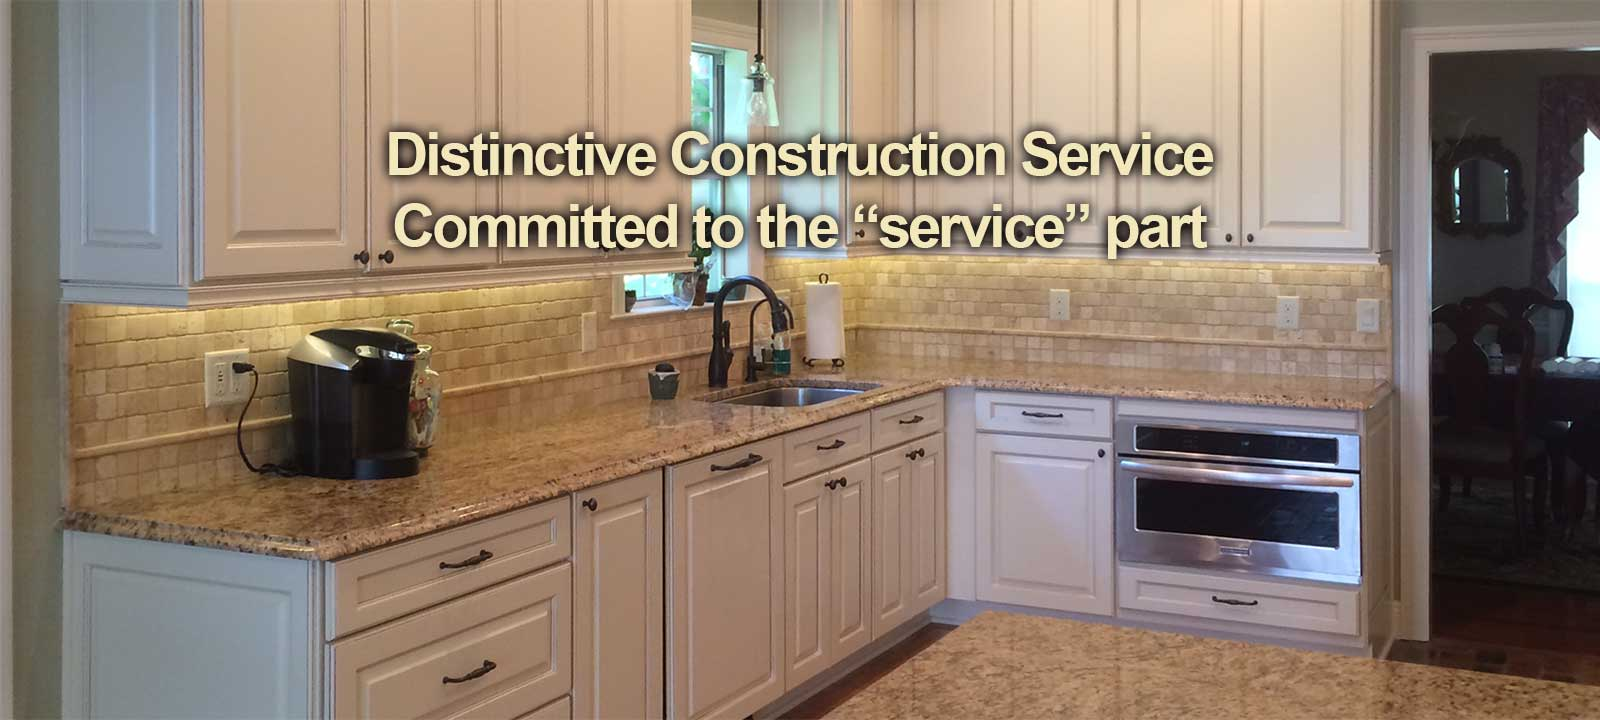 Home construction and remodeling service